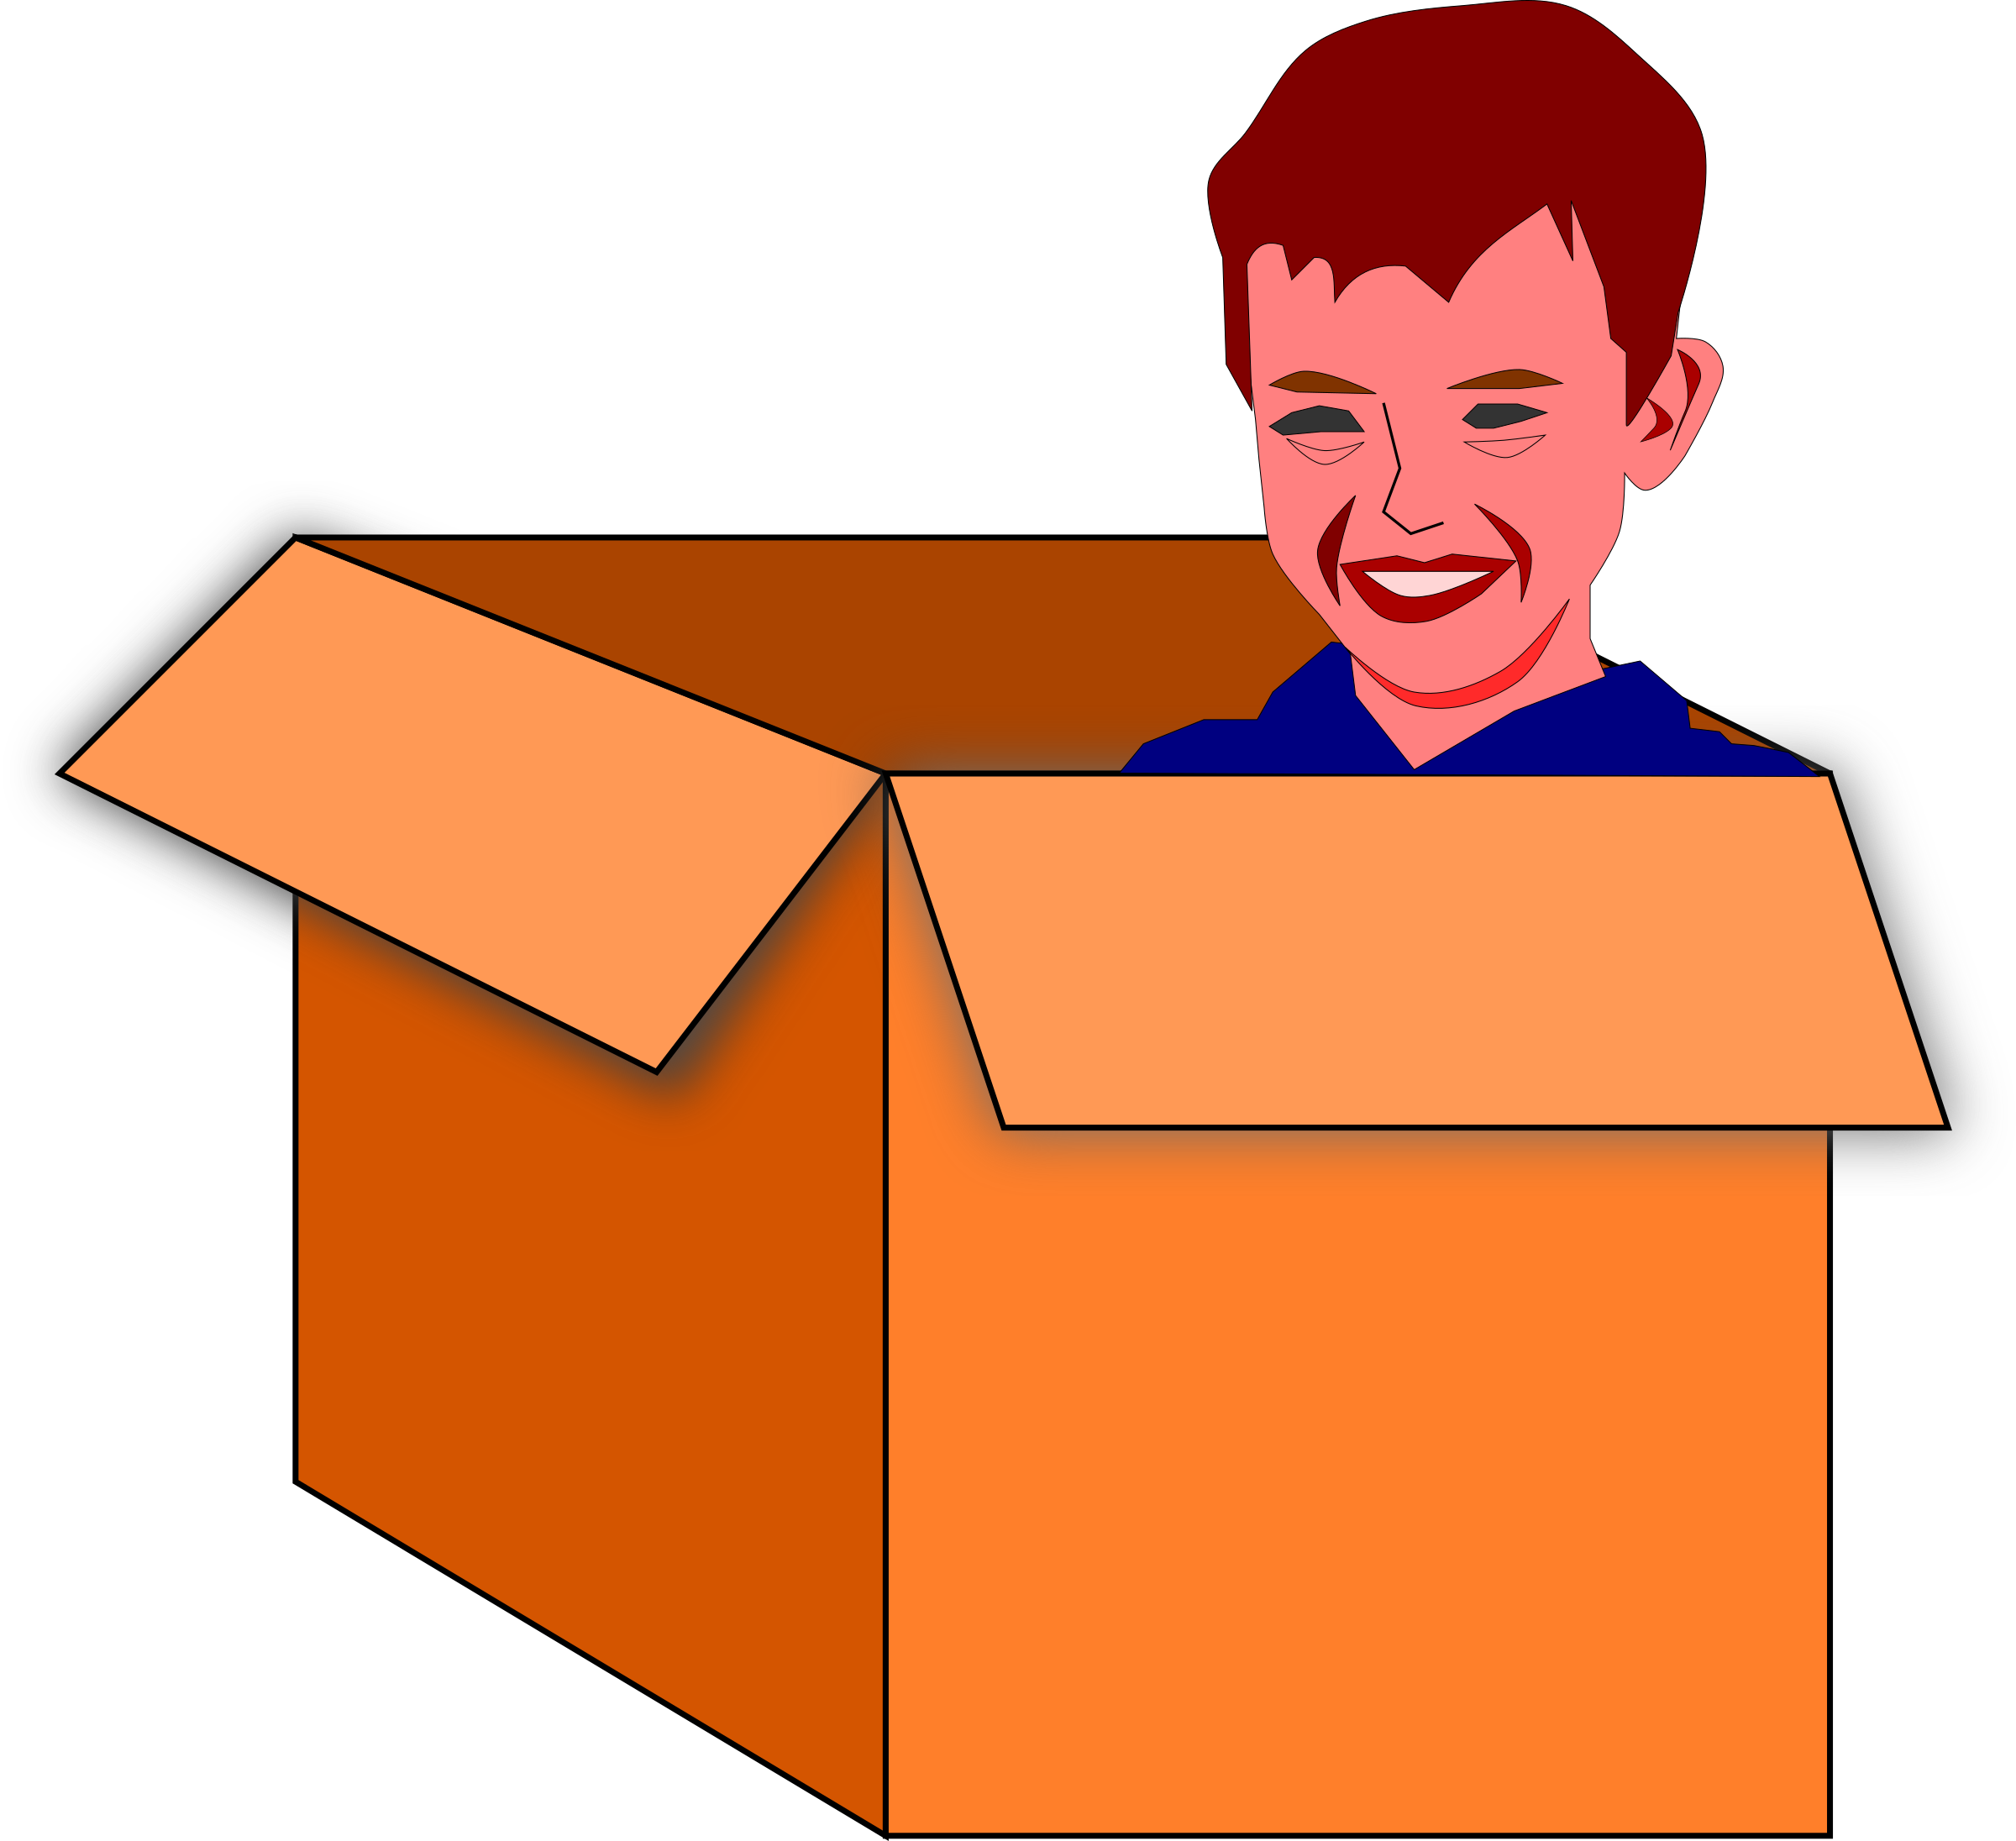 Box vector clipart svg black and white library Child in a box vector clipart image - Free stock photo - Public ... svg black and white library